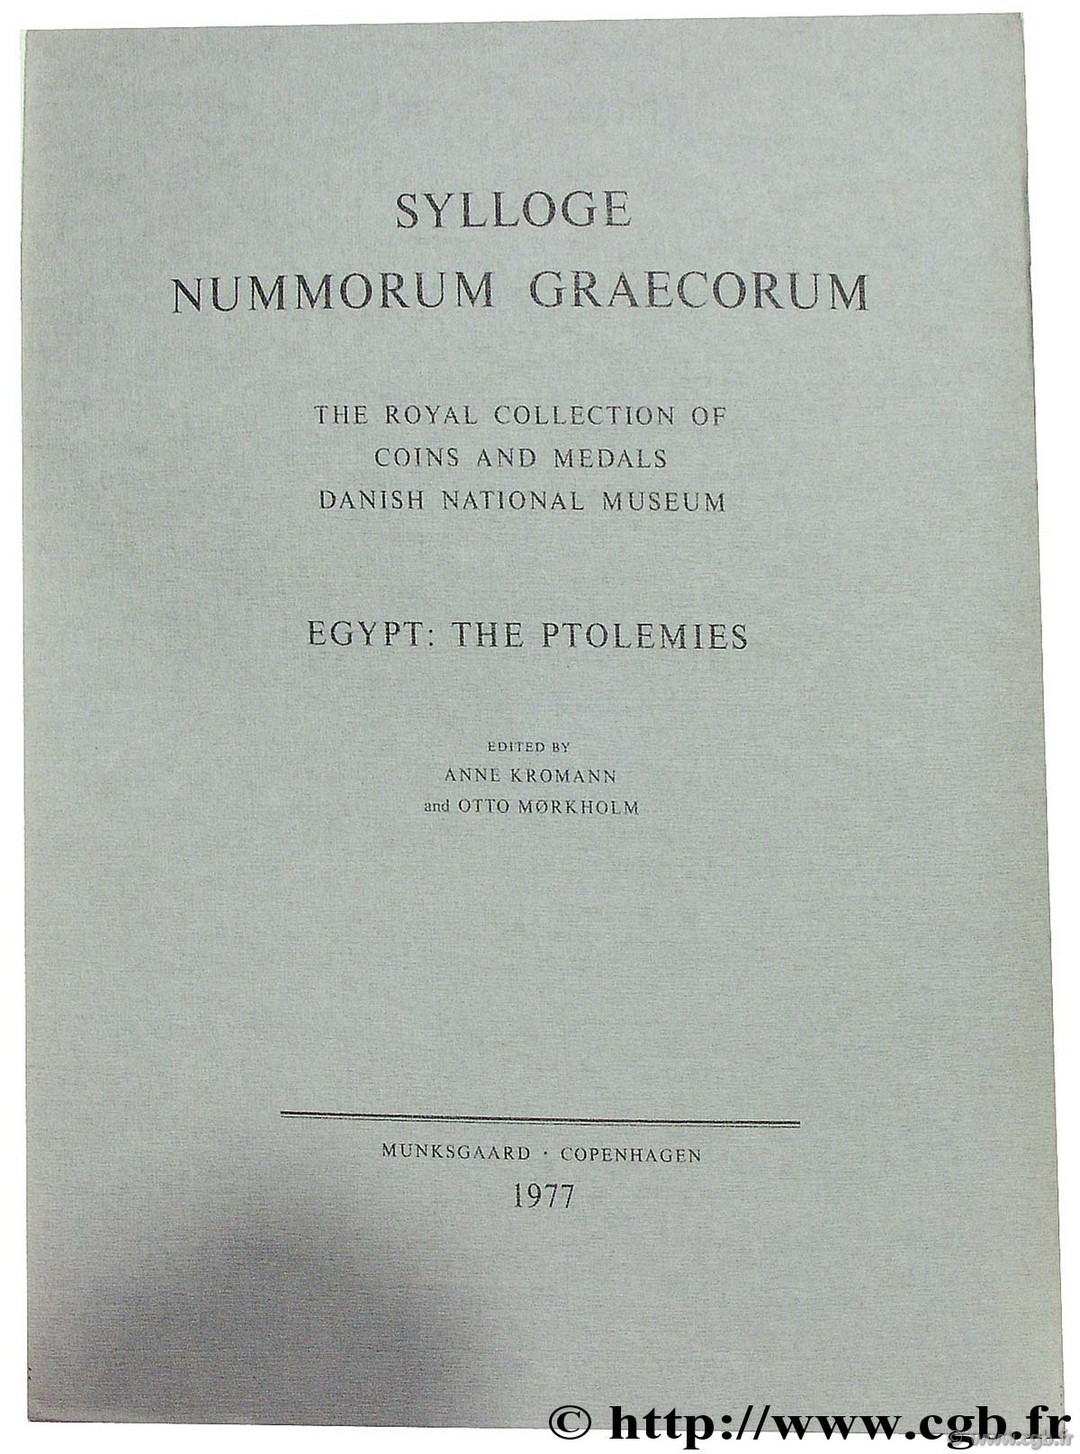 Sylloge Nummorum Graecorum, The Royal Collection of Coins and Medals Danish NNational Museum, vol. 40, Egypt : the Ptolemies KROMANN A., MORKHOLM O.